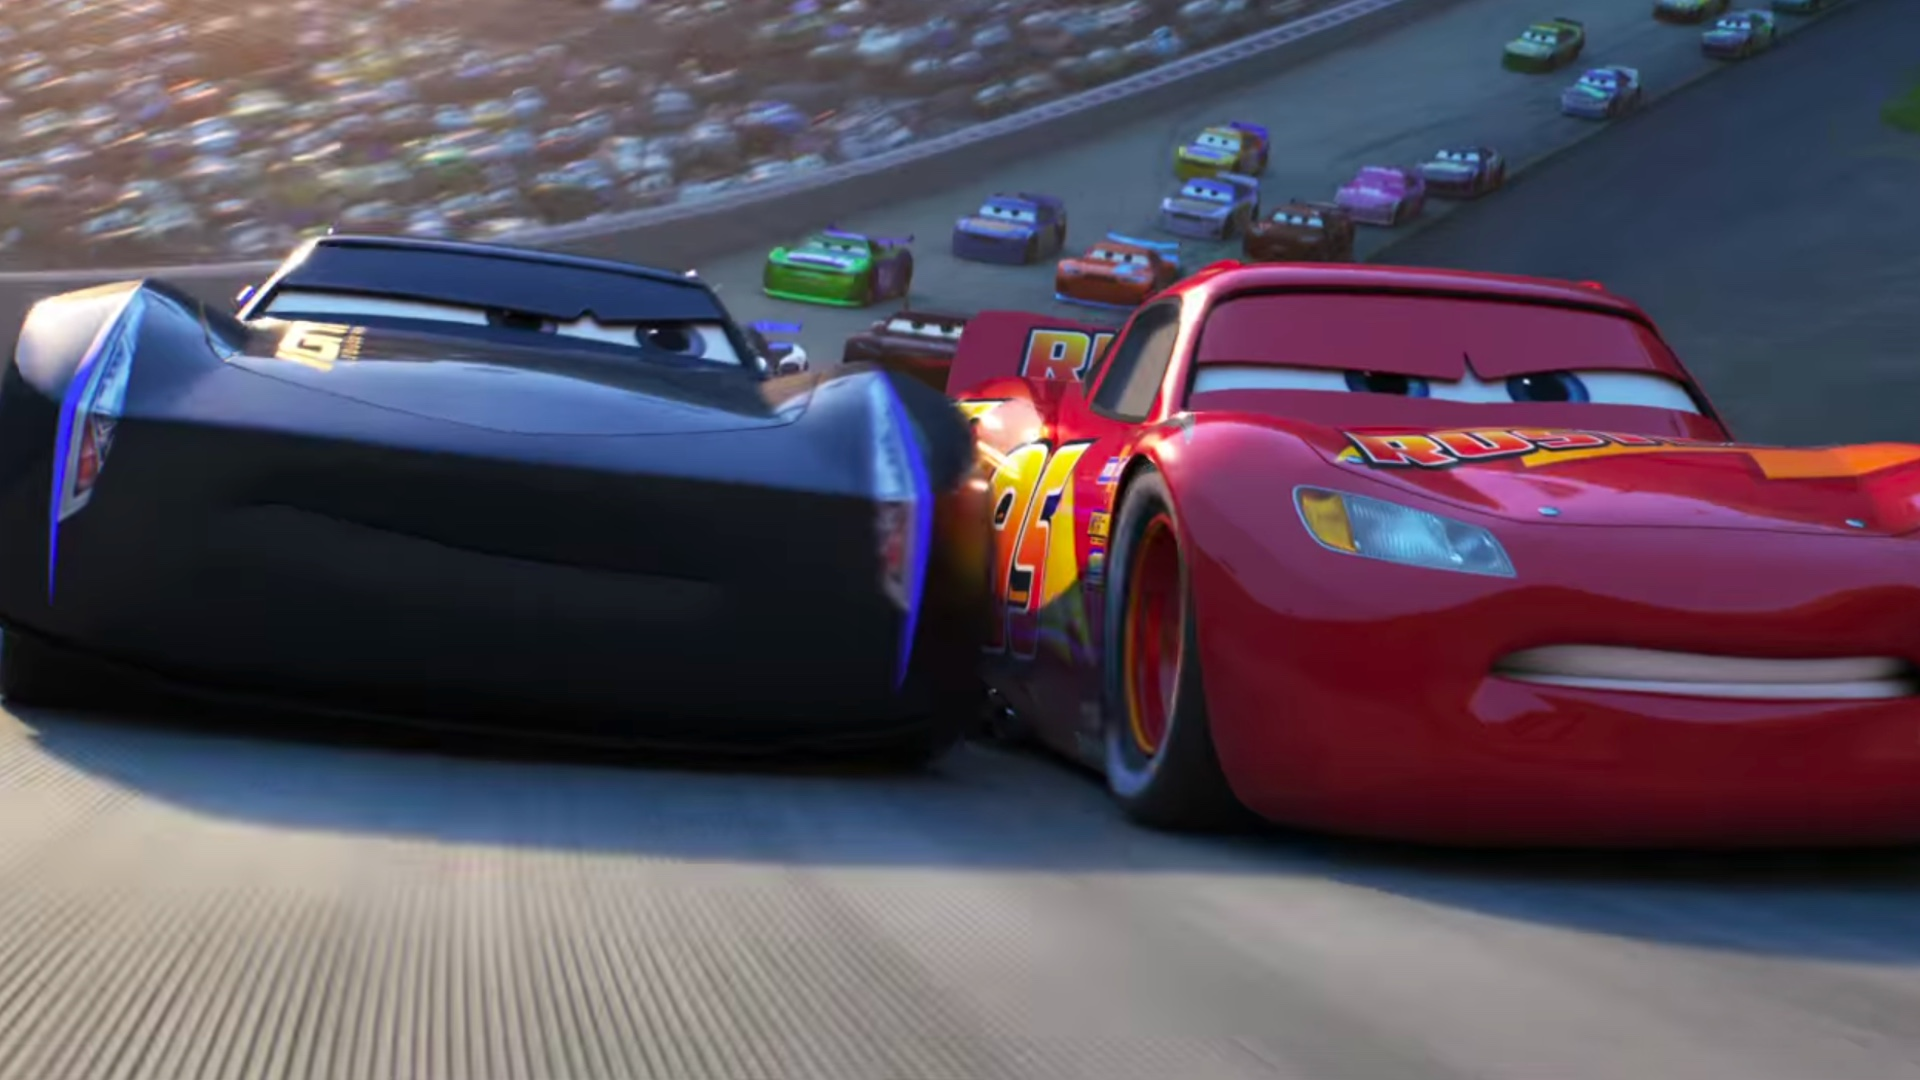 Lightening Mcqueen Vs Jackson Storm In New Cars 3 Rivalry